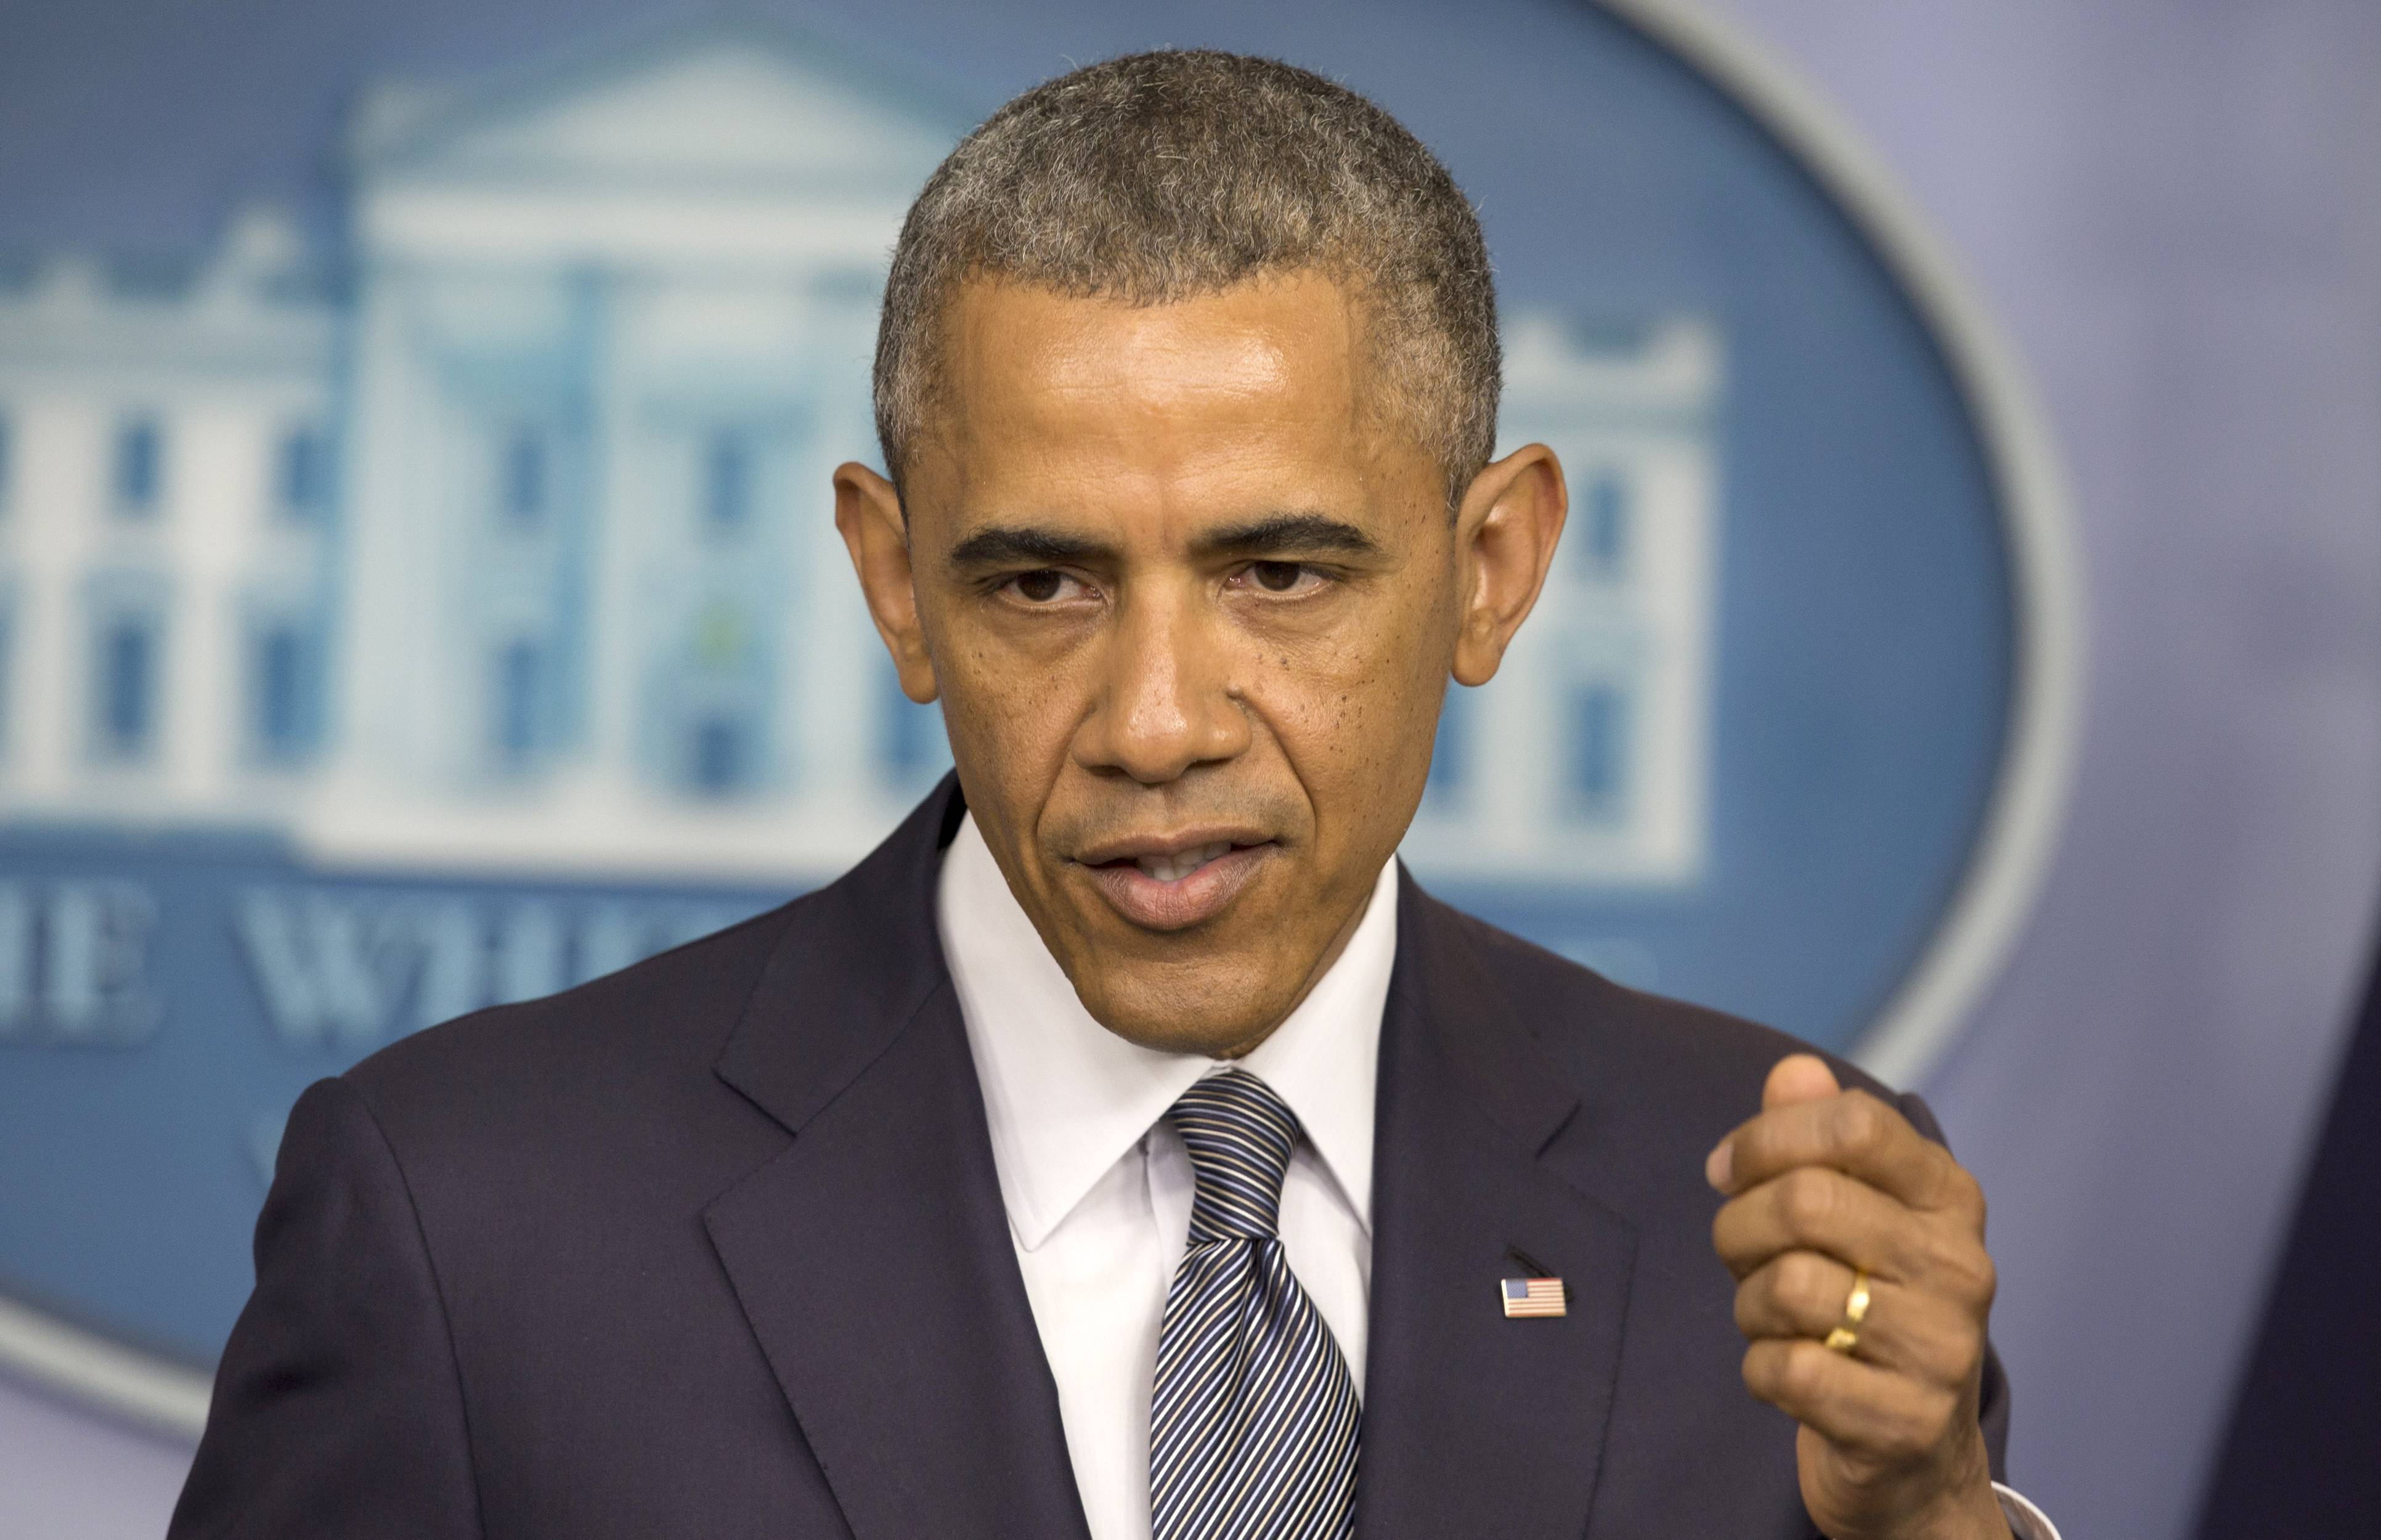 Obama: Plane shot down by missile, 1 American dead